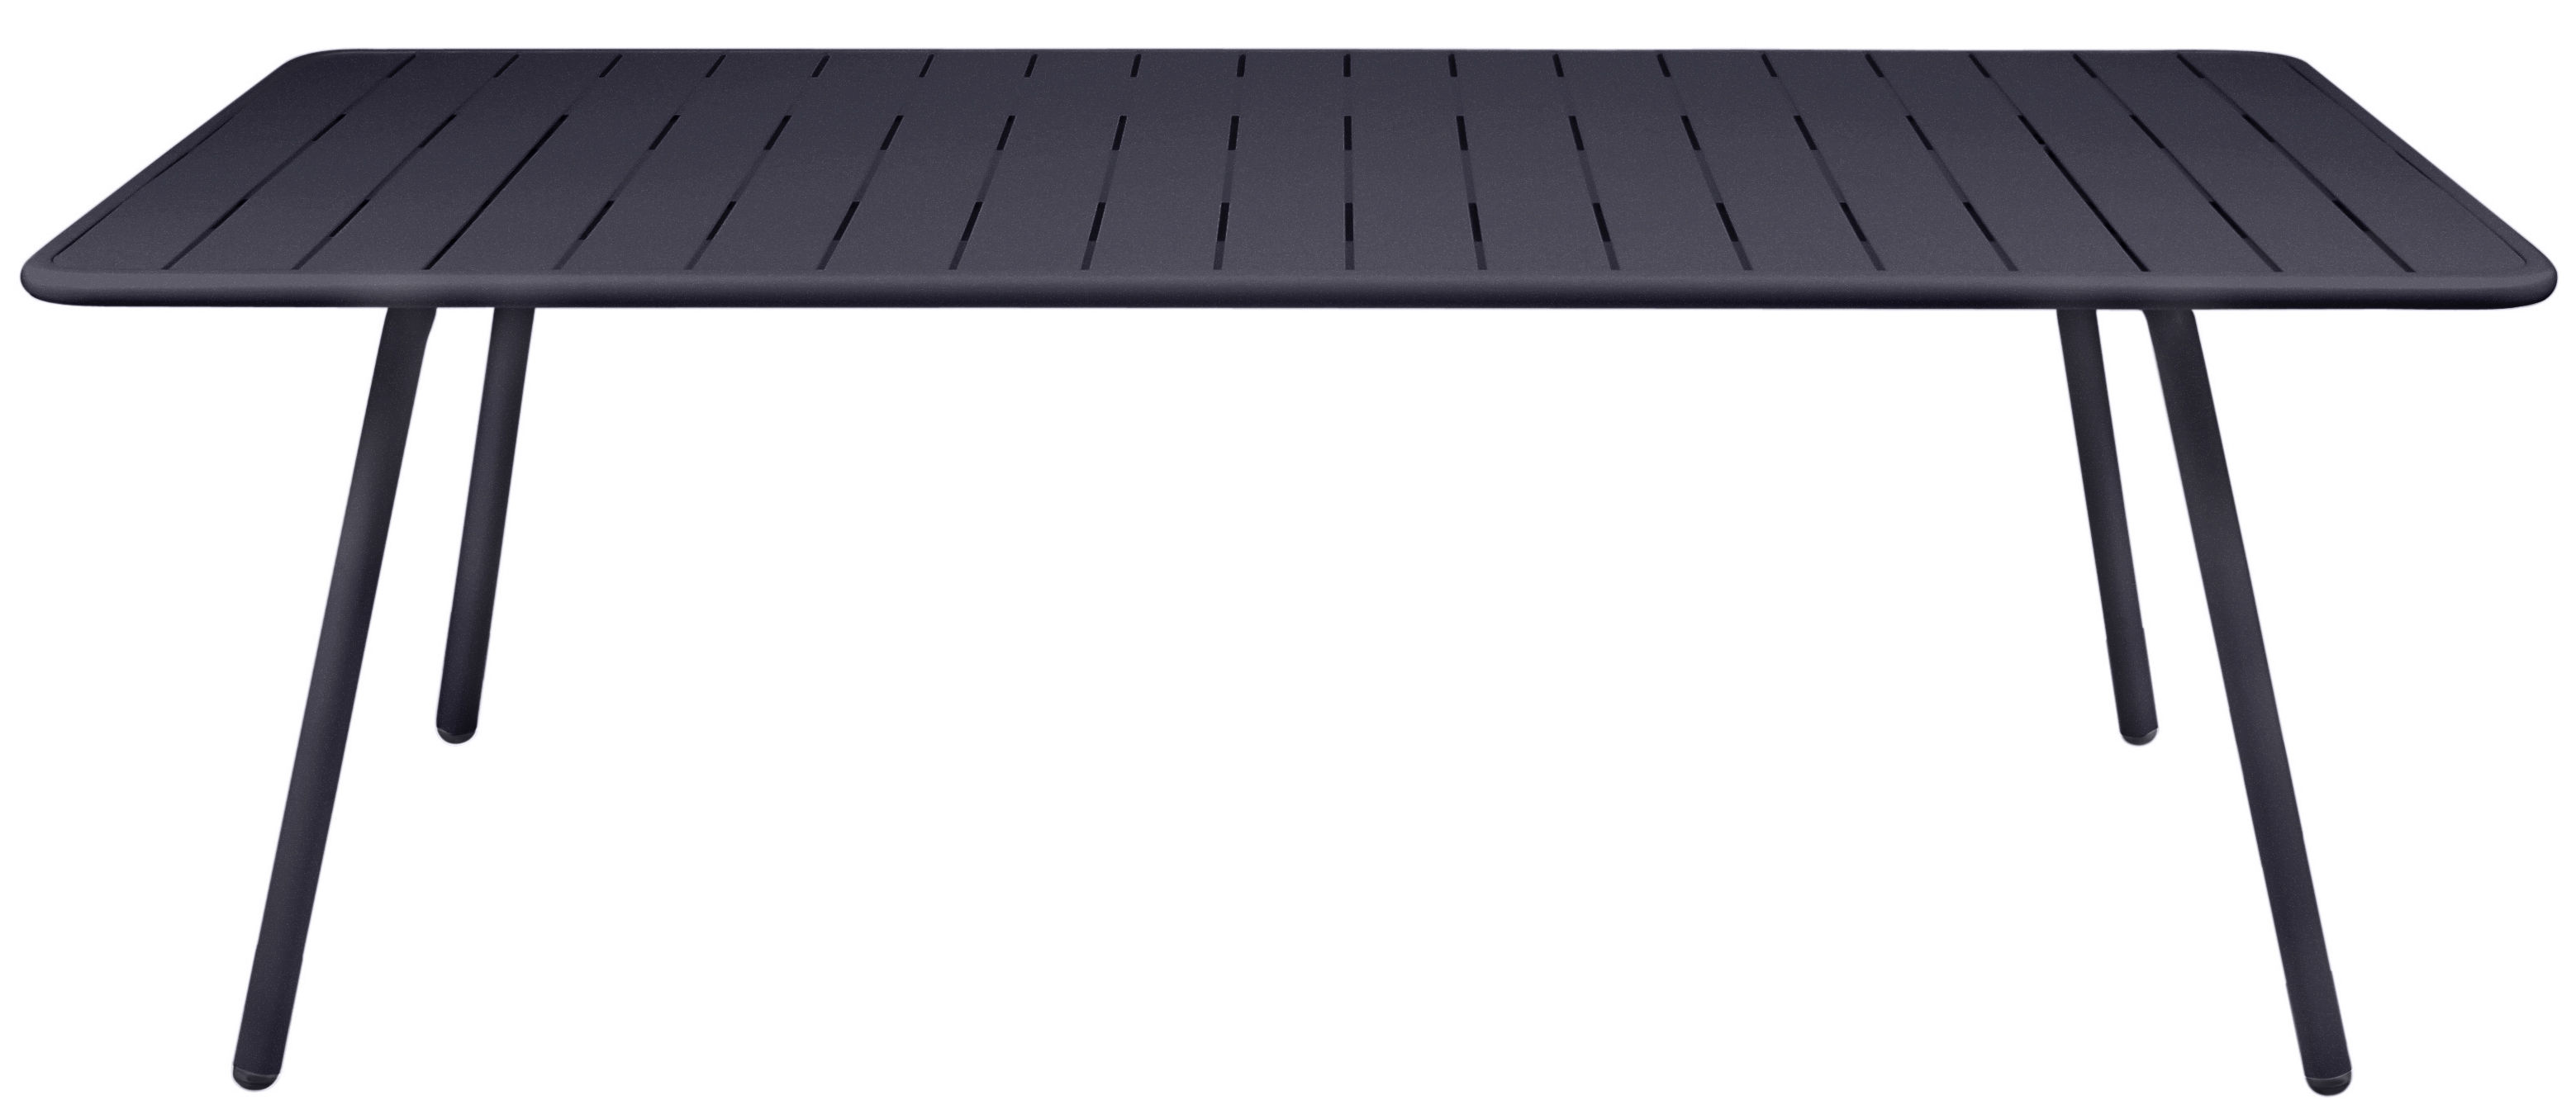 Luxembourg table rectangular 8 persons l 207 cm for Fermob luxembourg table